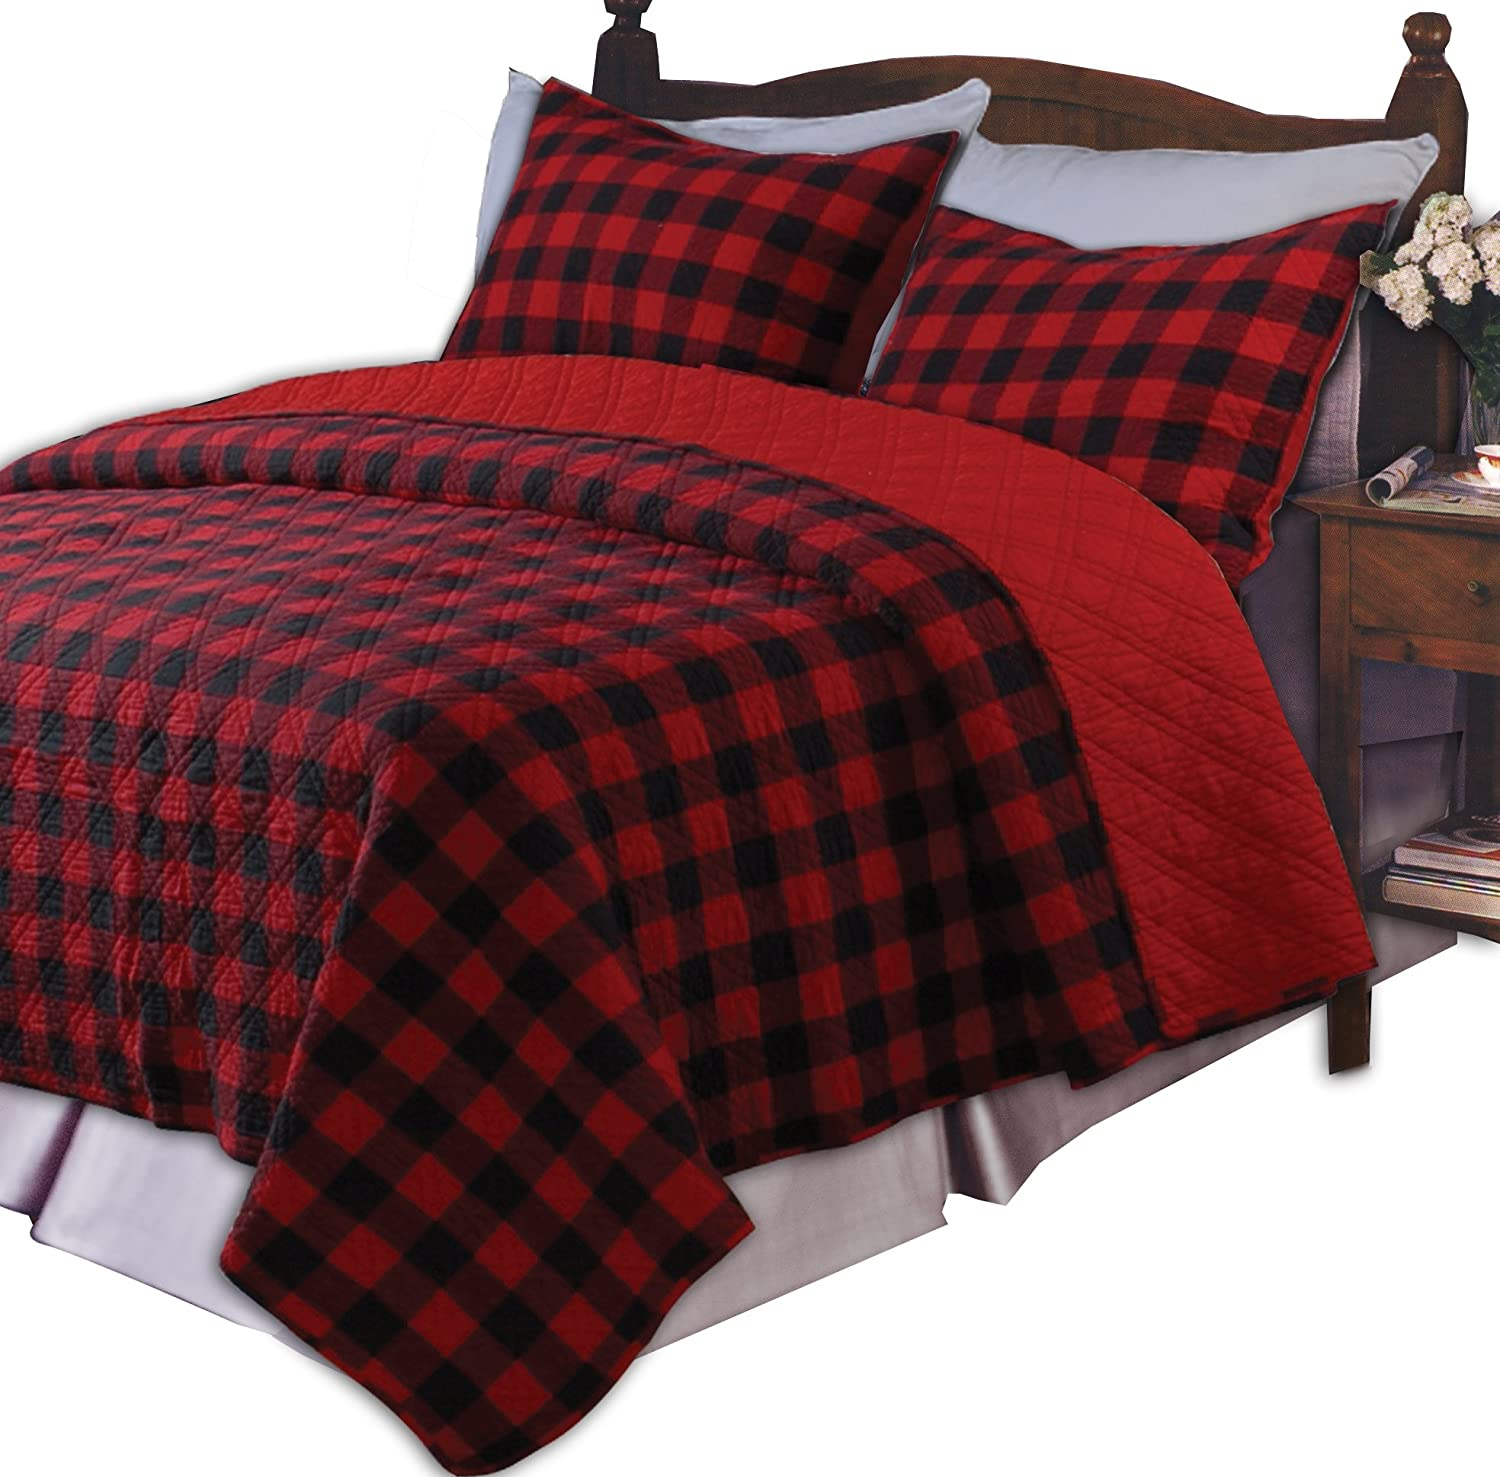 Greenland Home Western Plaid Twin Quilt Set, Red